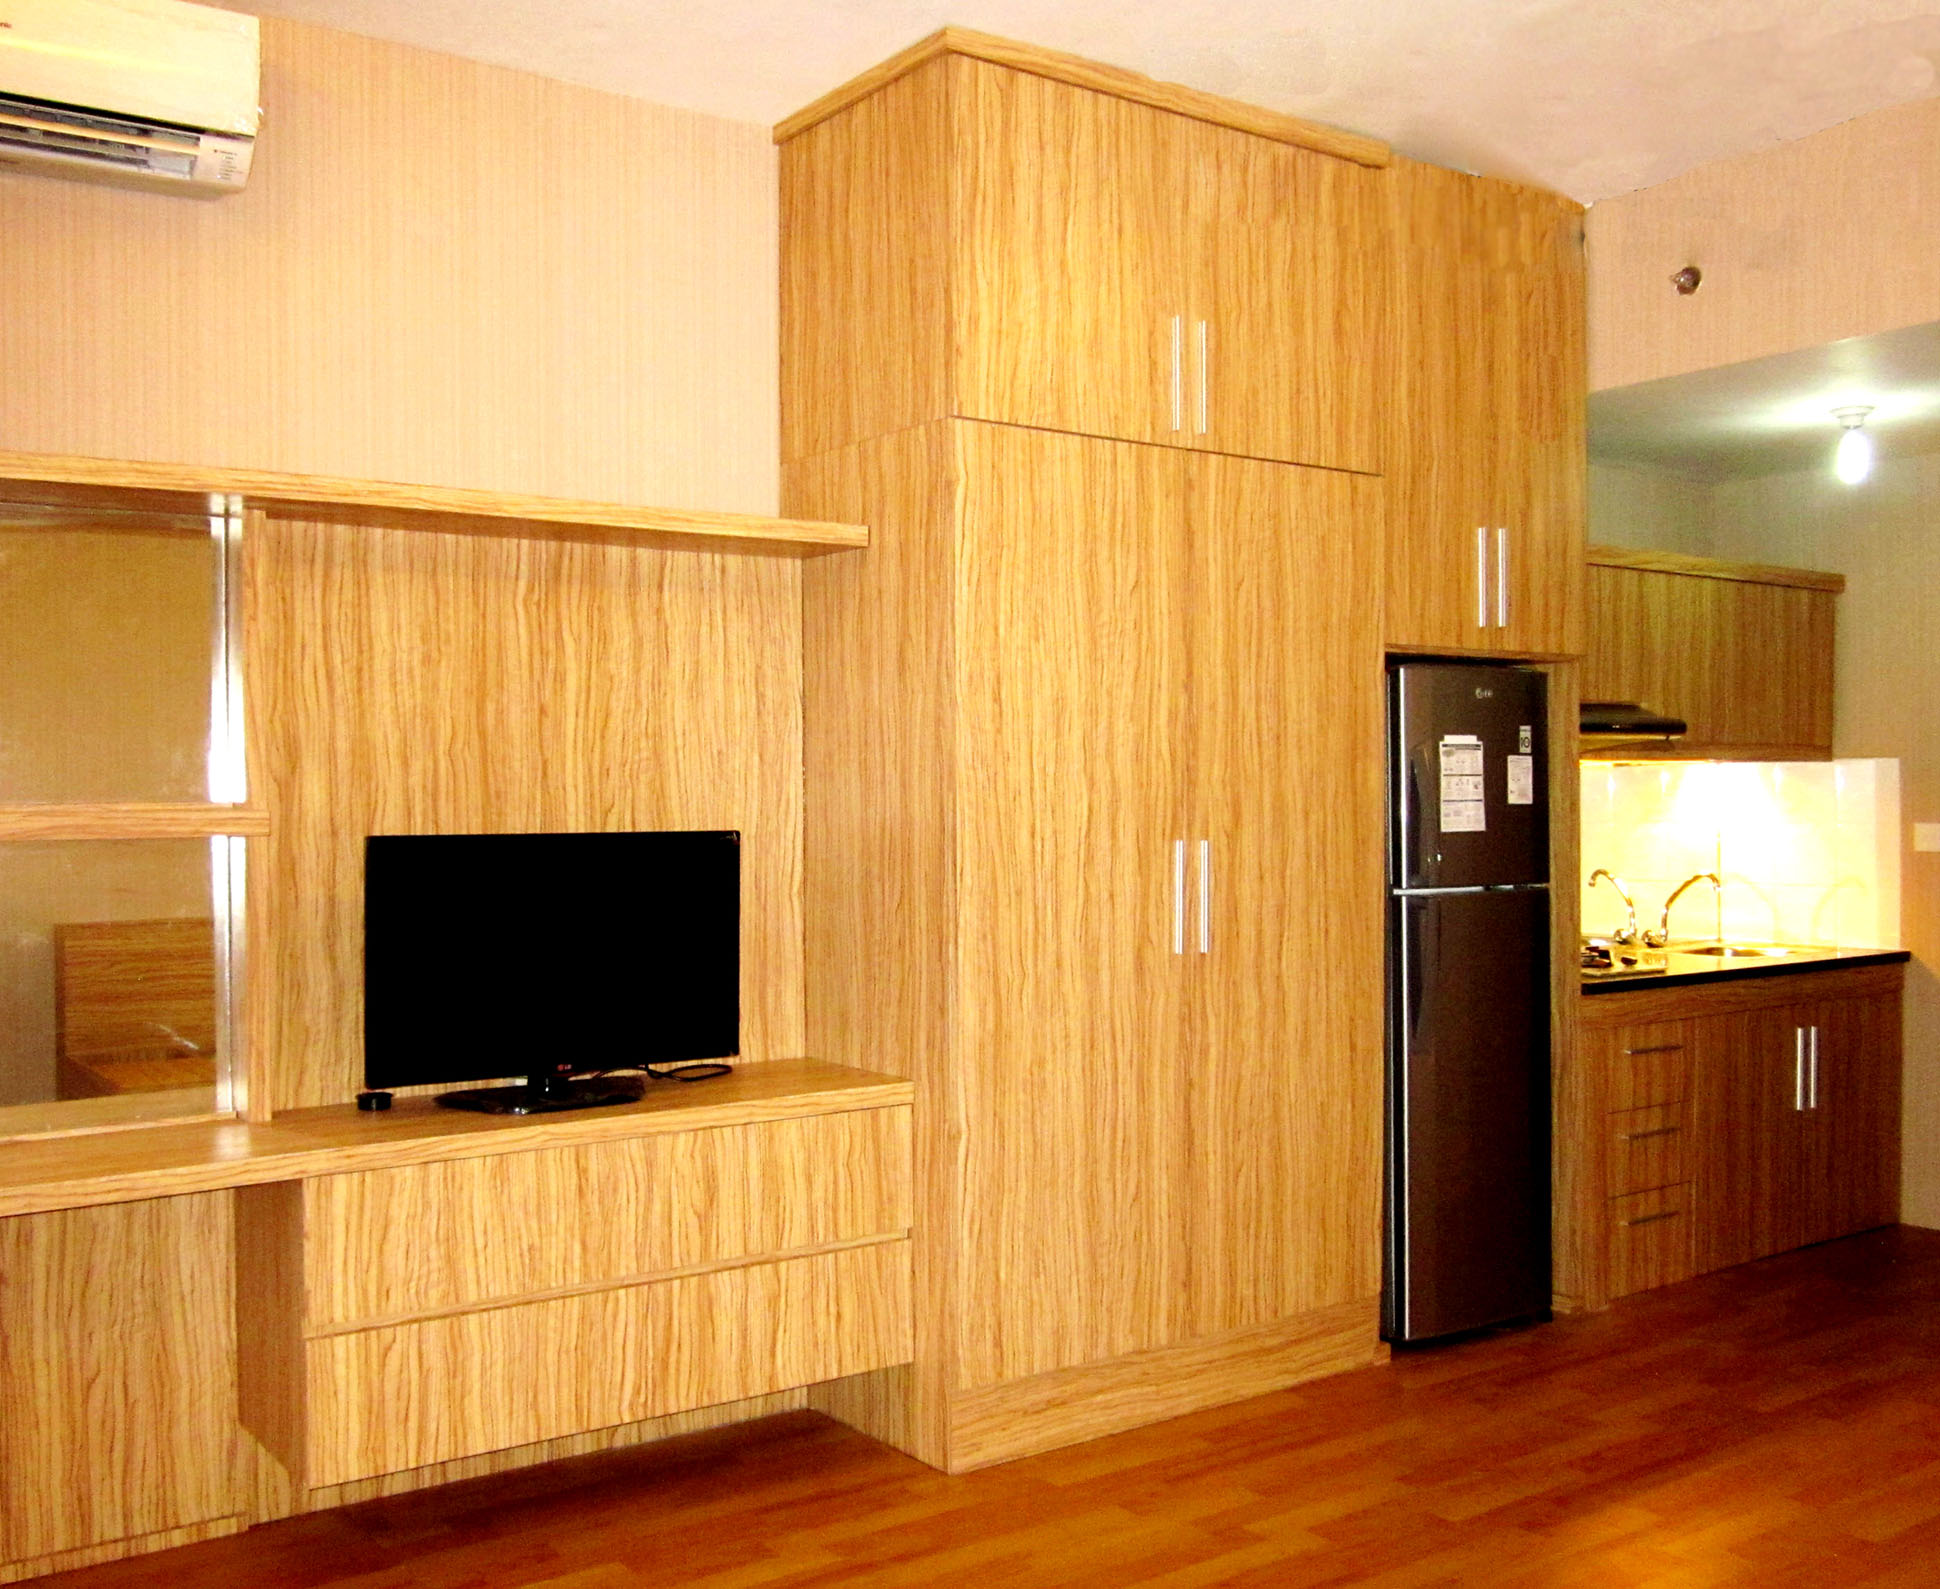 interior-design-apartment-room-jakarta-morri-design-com-1